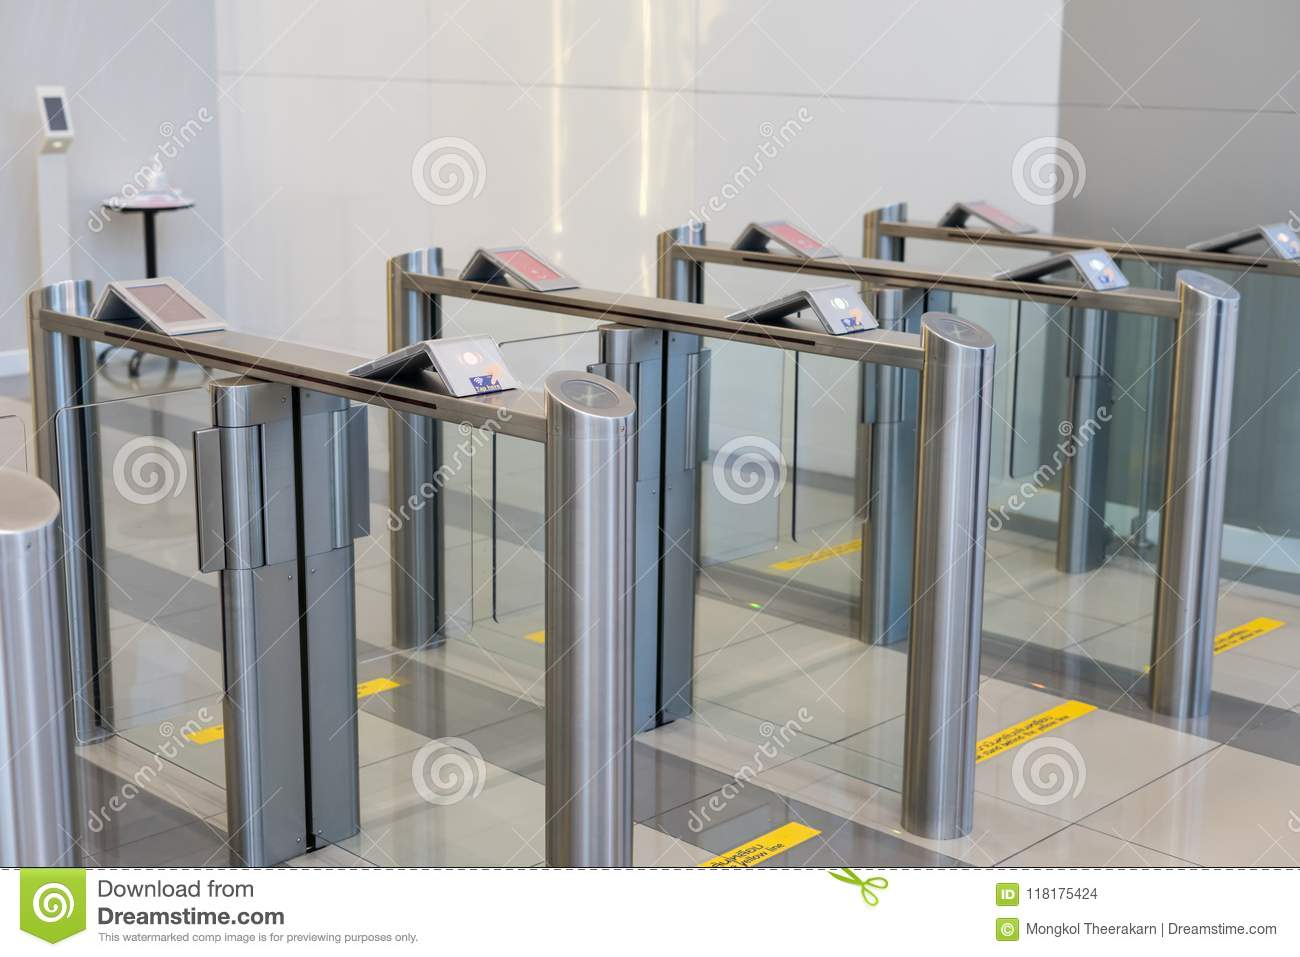 Security at an entrance gate with key card access control smart office building